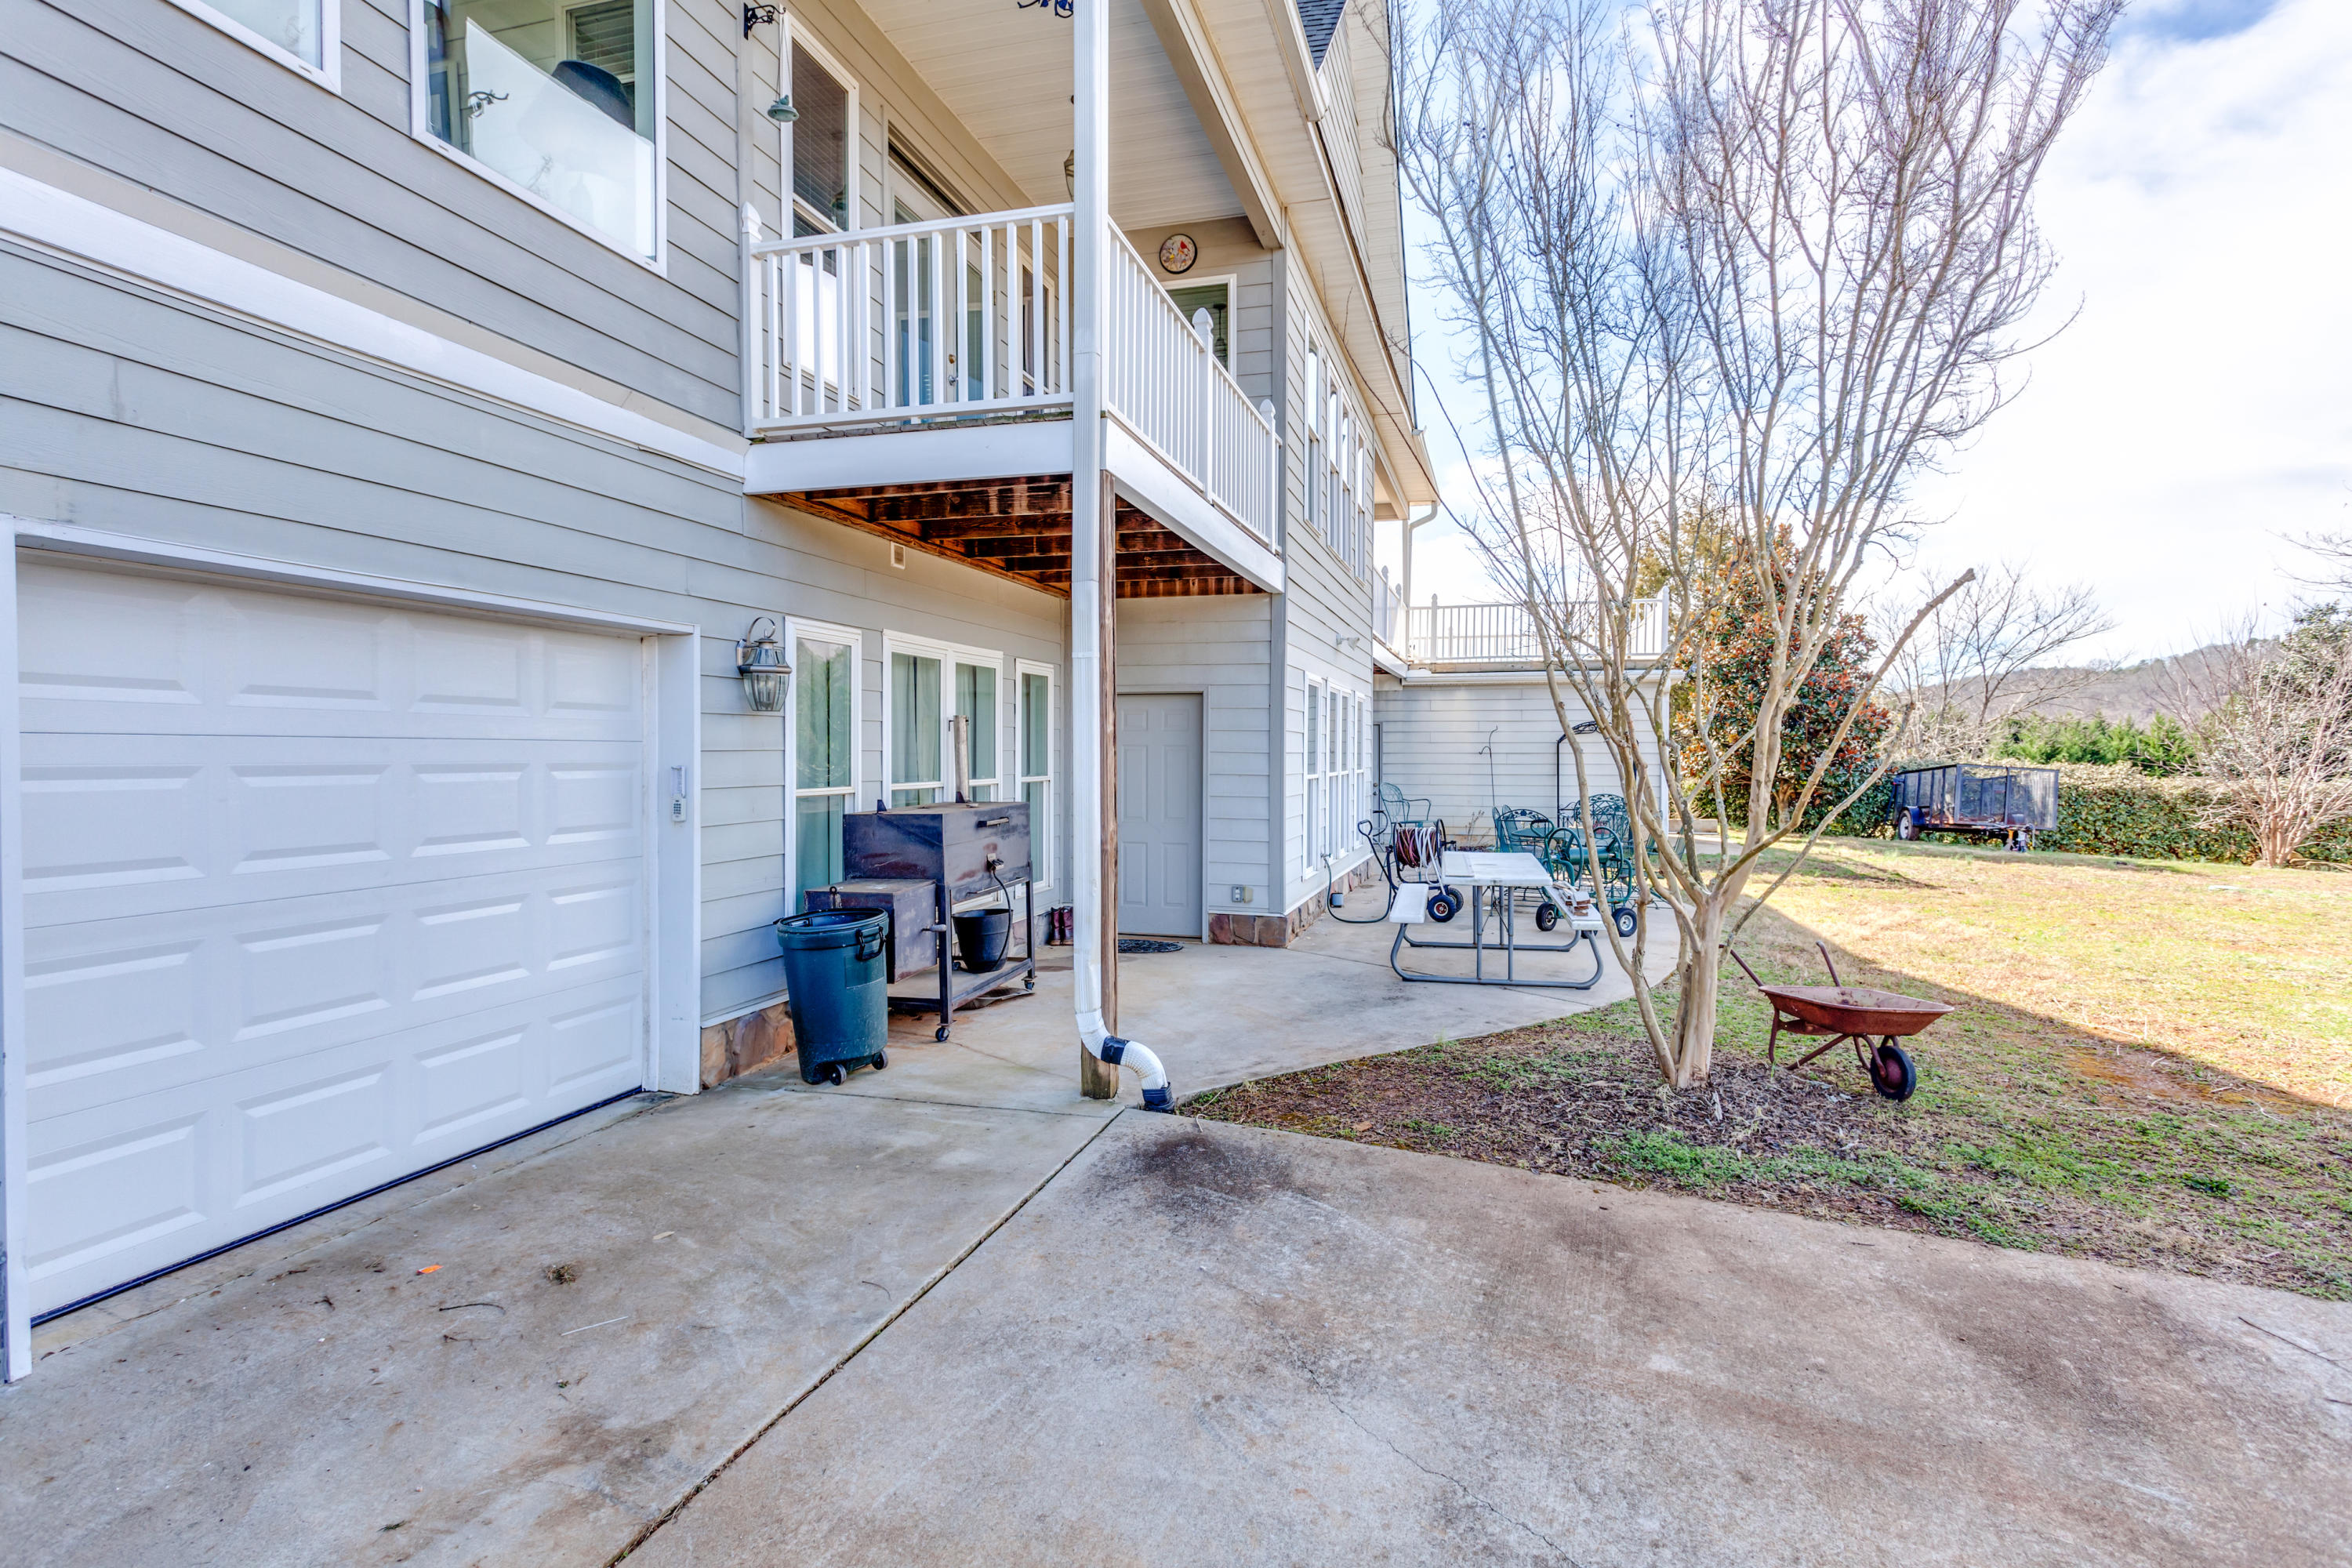 174 Marble View Drive, Kingston, Tennessee 37763, 3 Bedrooms Bedrooms, ,4 BathroomsBathrooms,Single Family,For Sale,Marble View,1097211